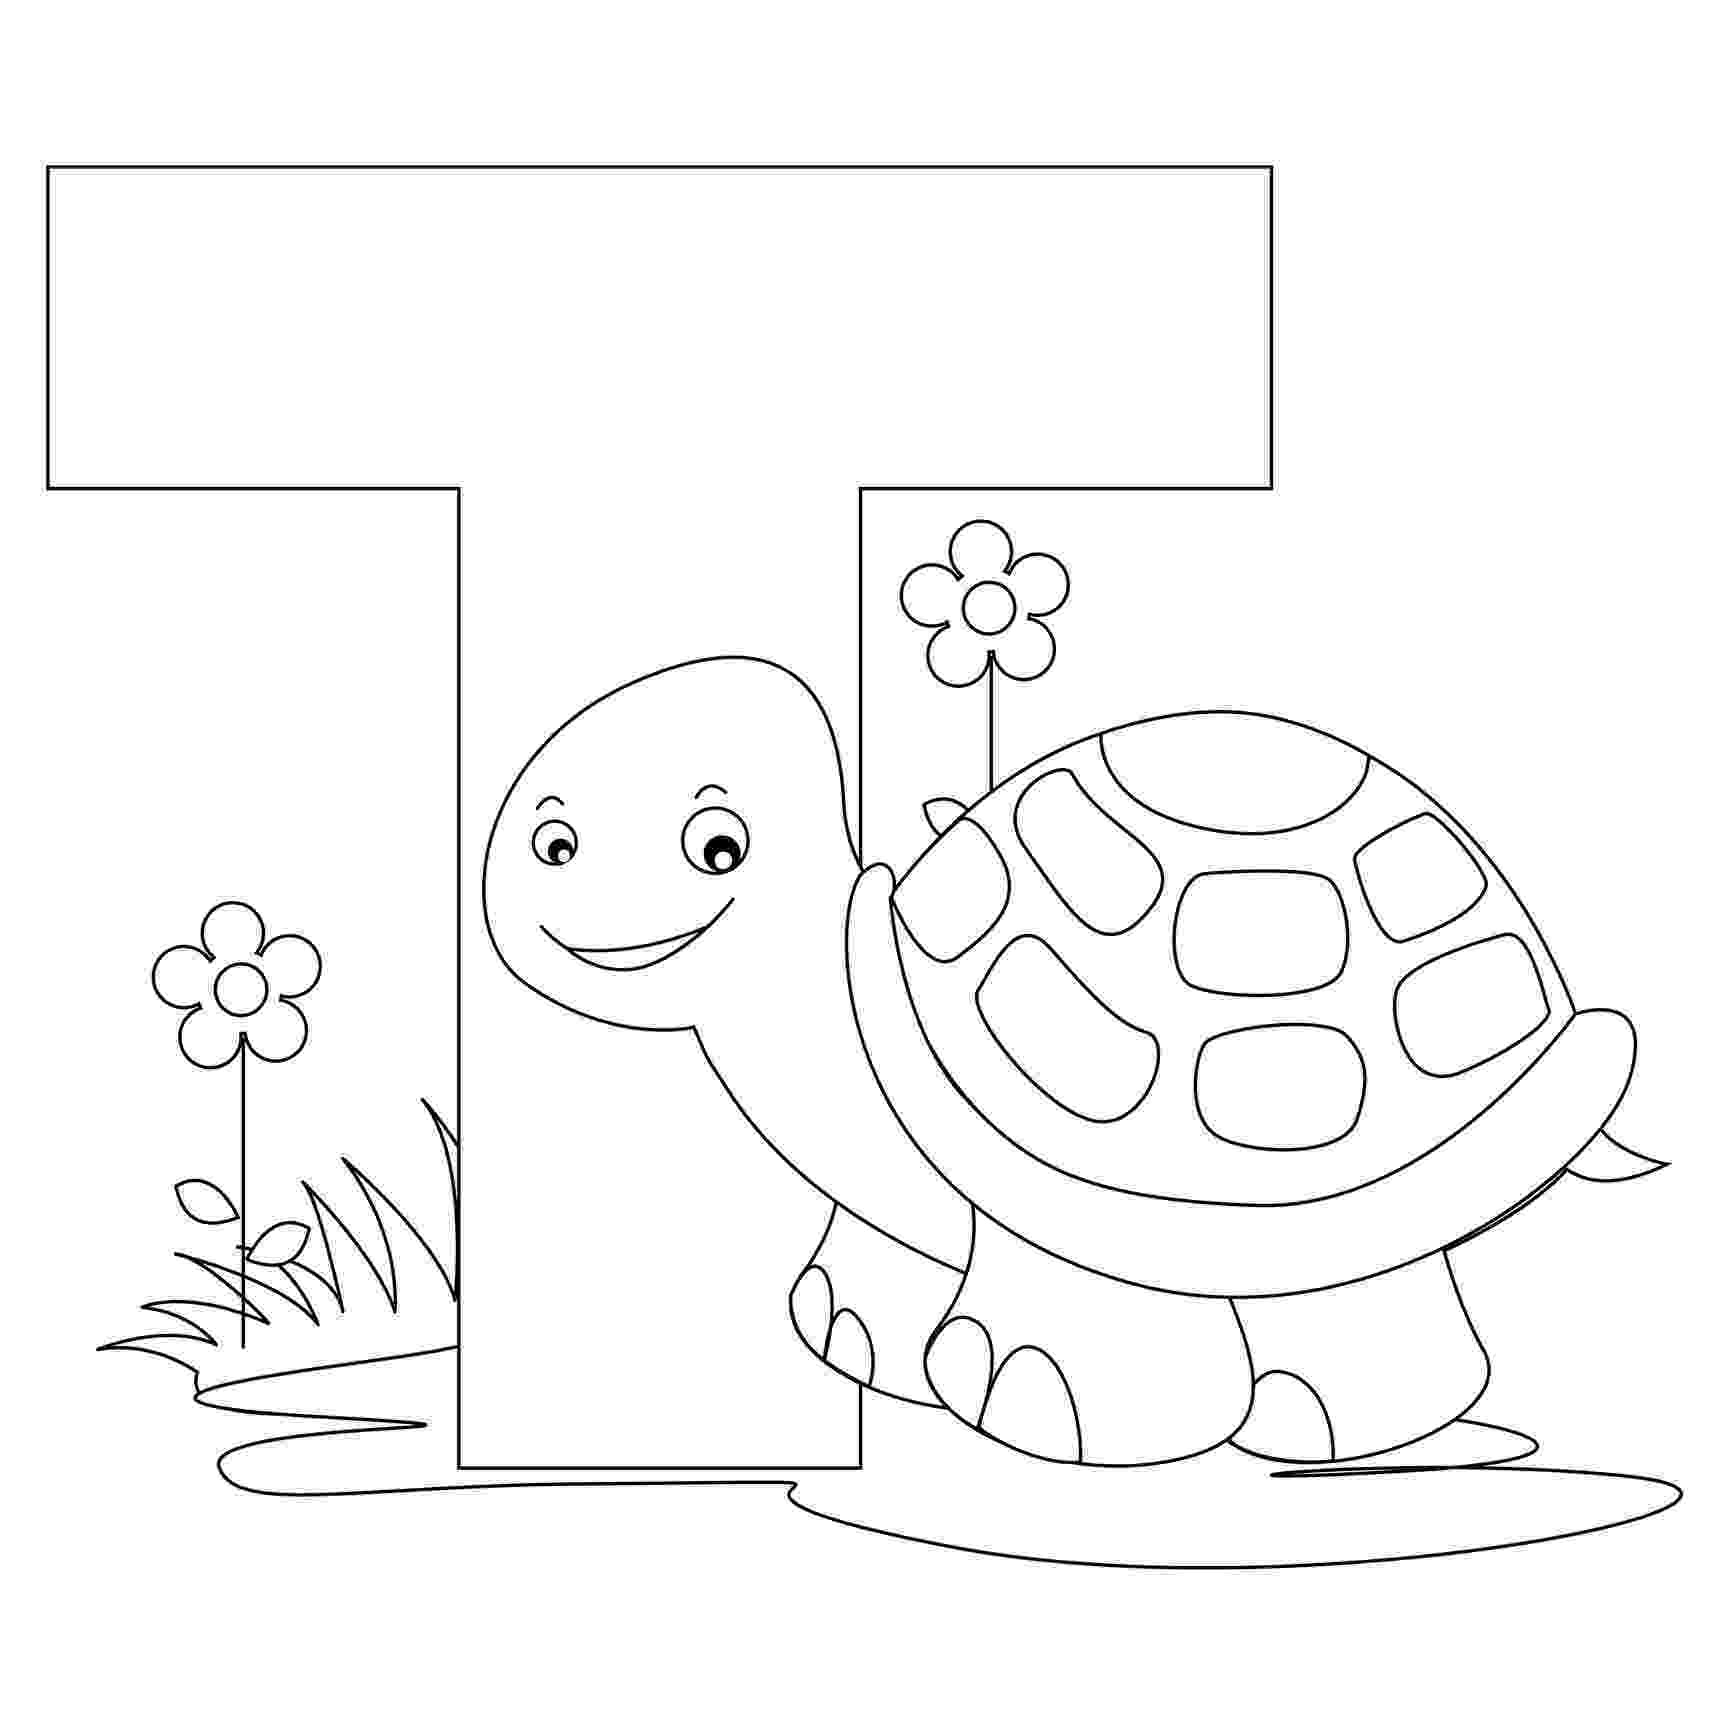 printable coloring alphabet letters free printable alphabet coloring pages for kids best alphabet letters printable coloring